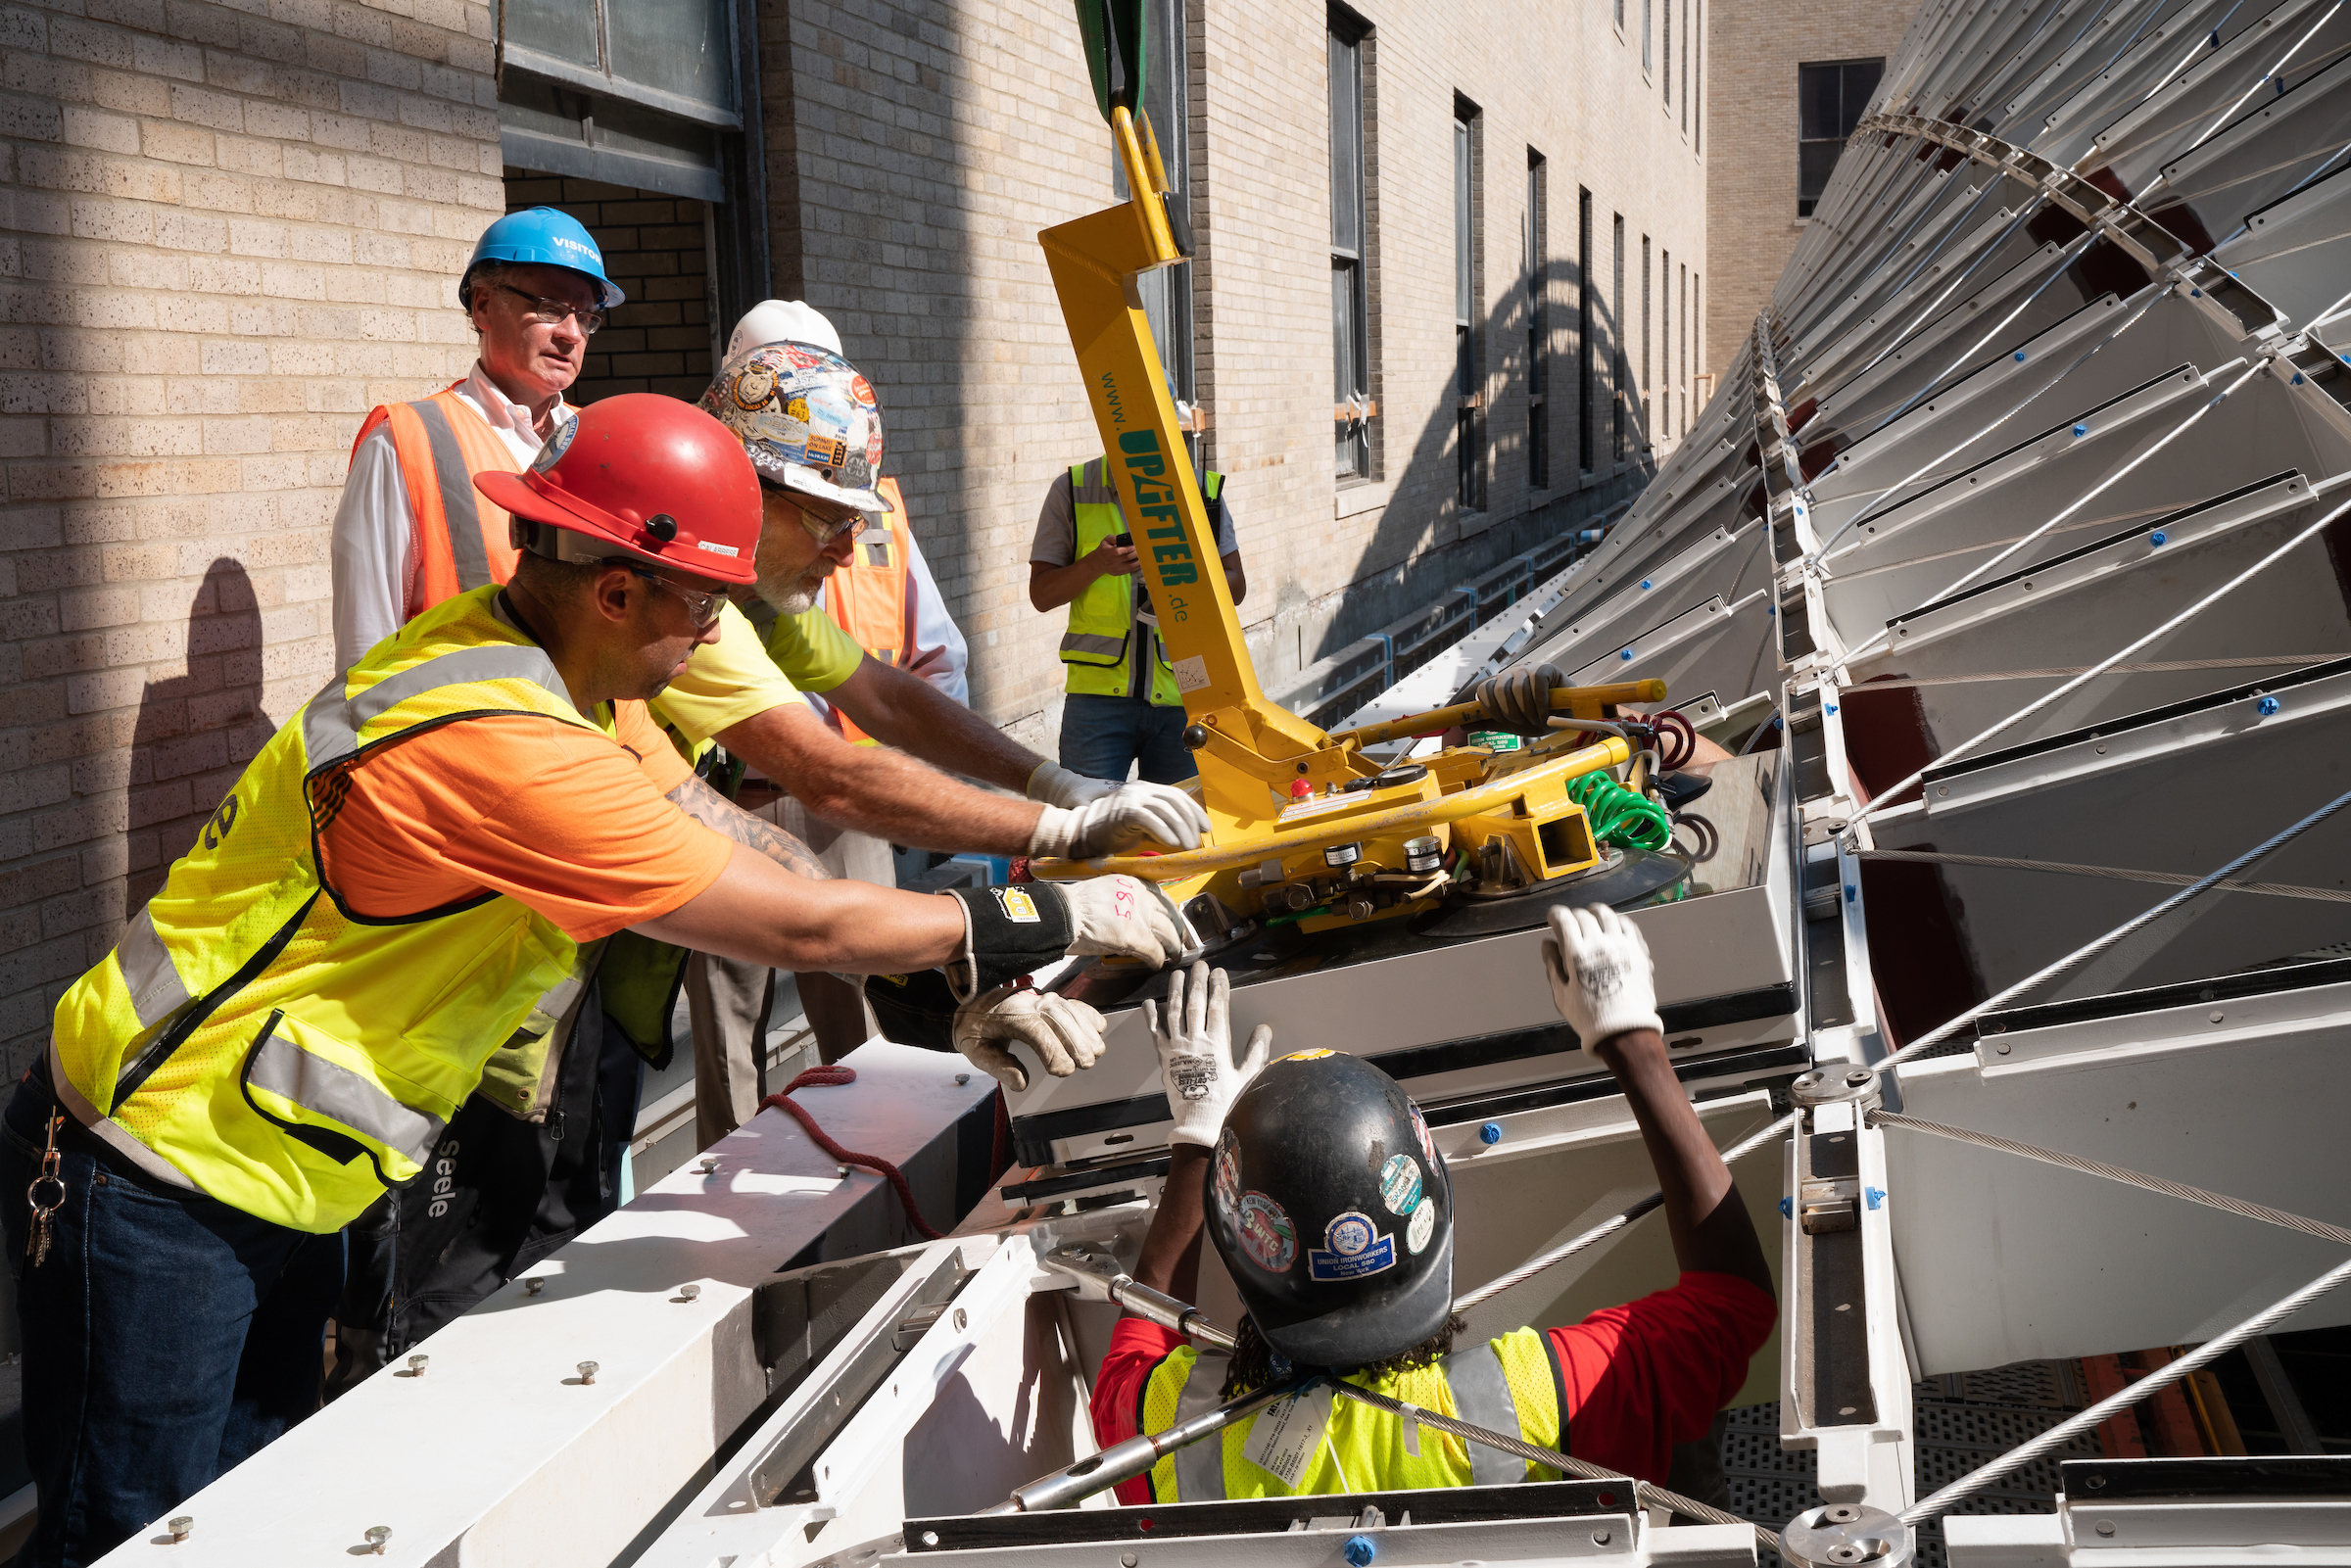 Construction workers at work on a metal frame.